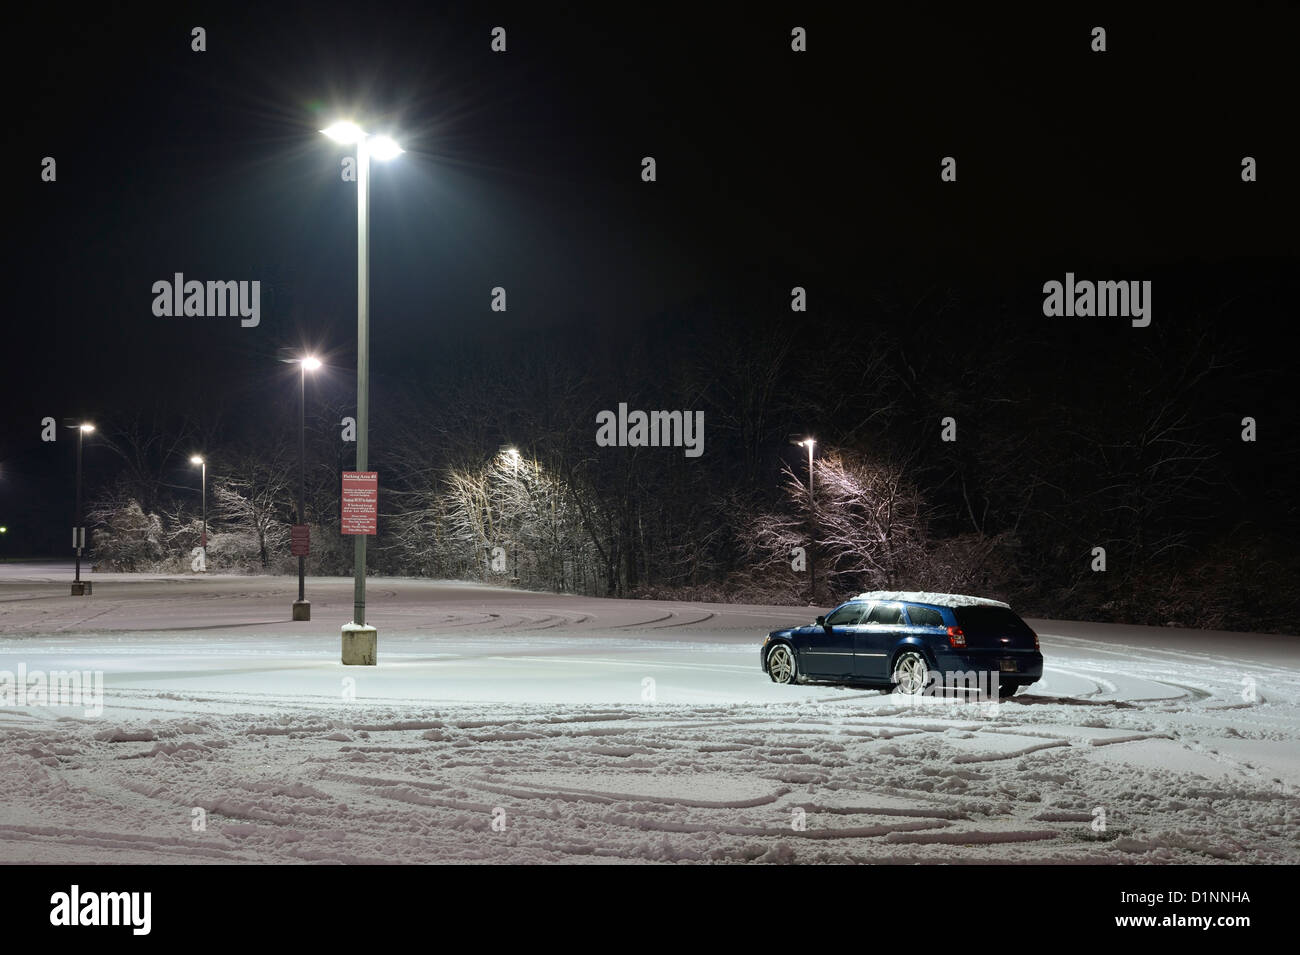 One Car In Lonely Snowy Parking Lot - Stock Image